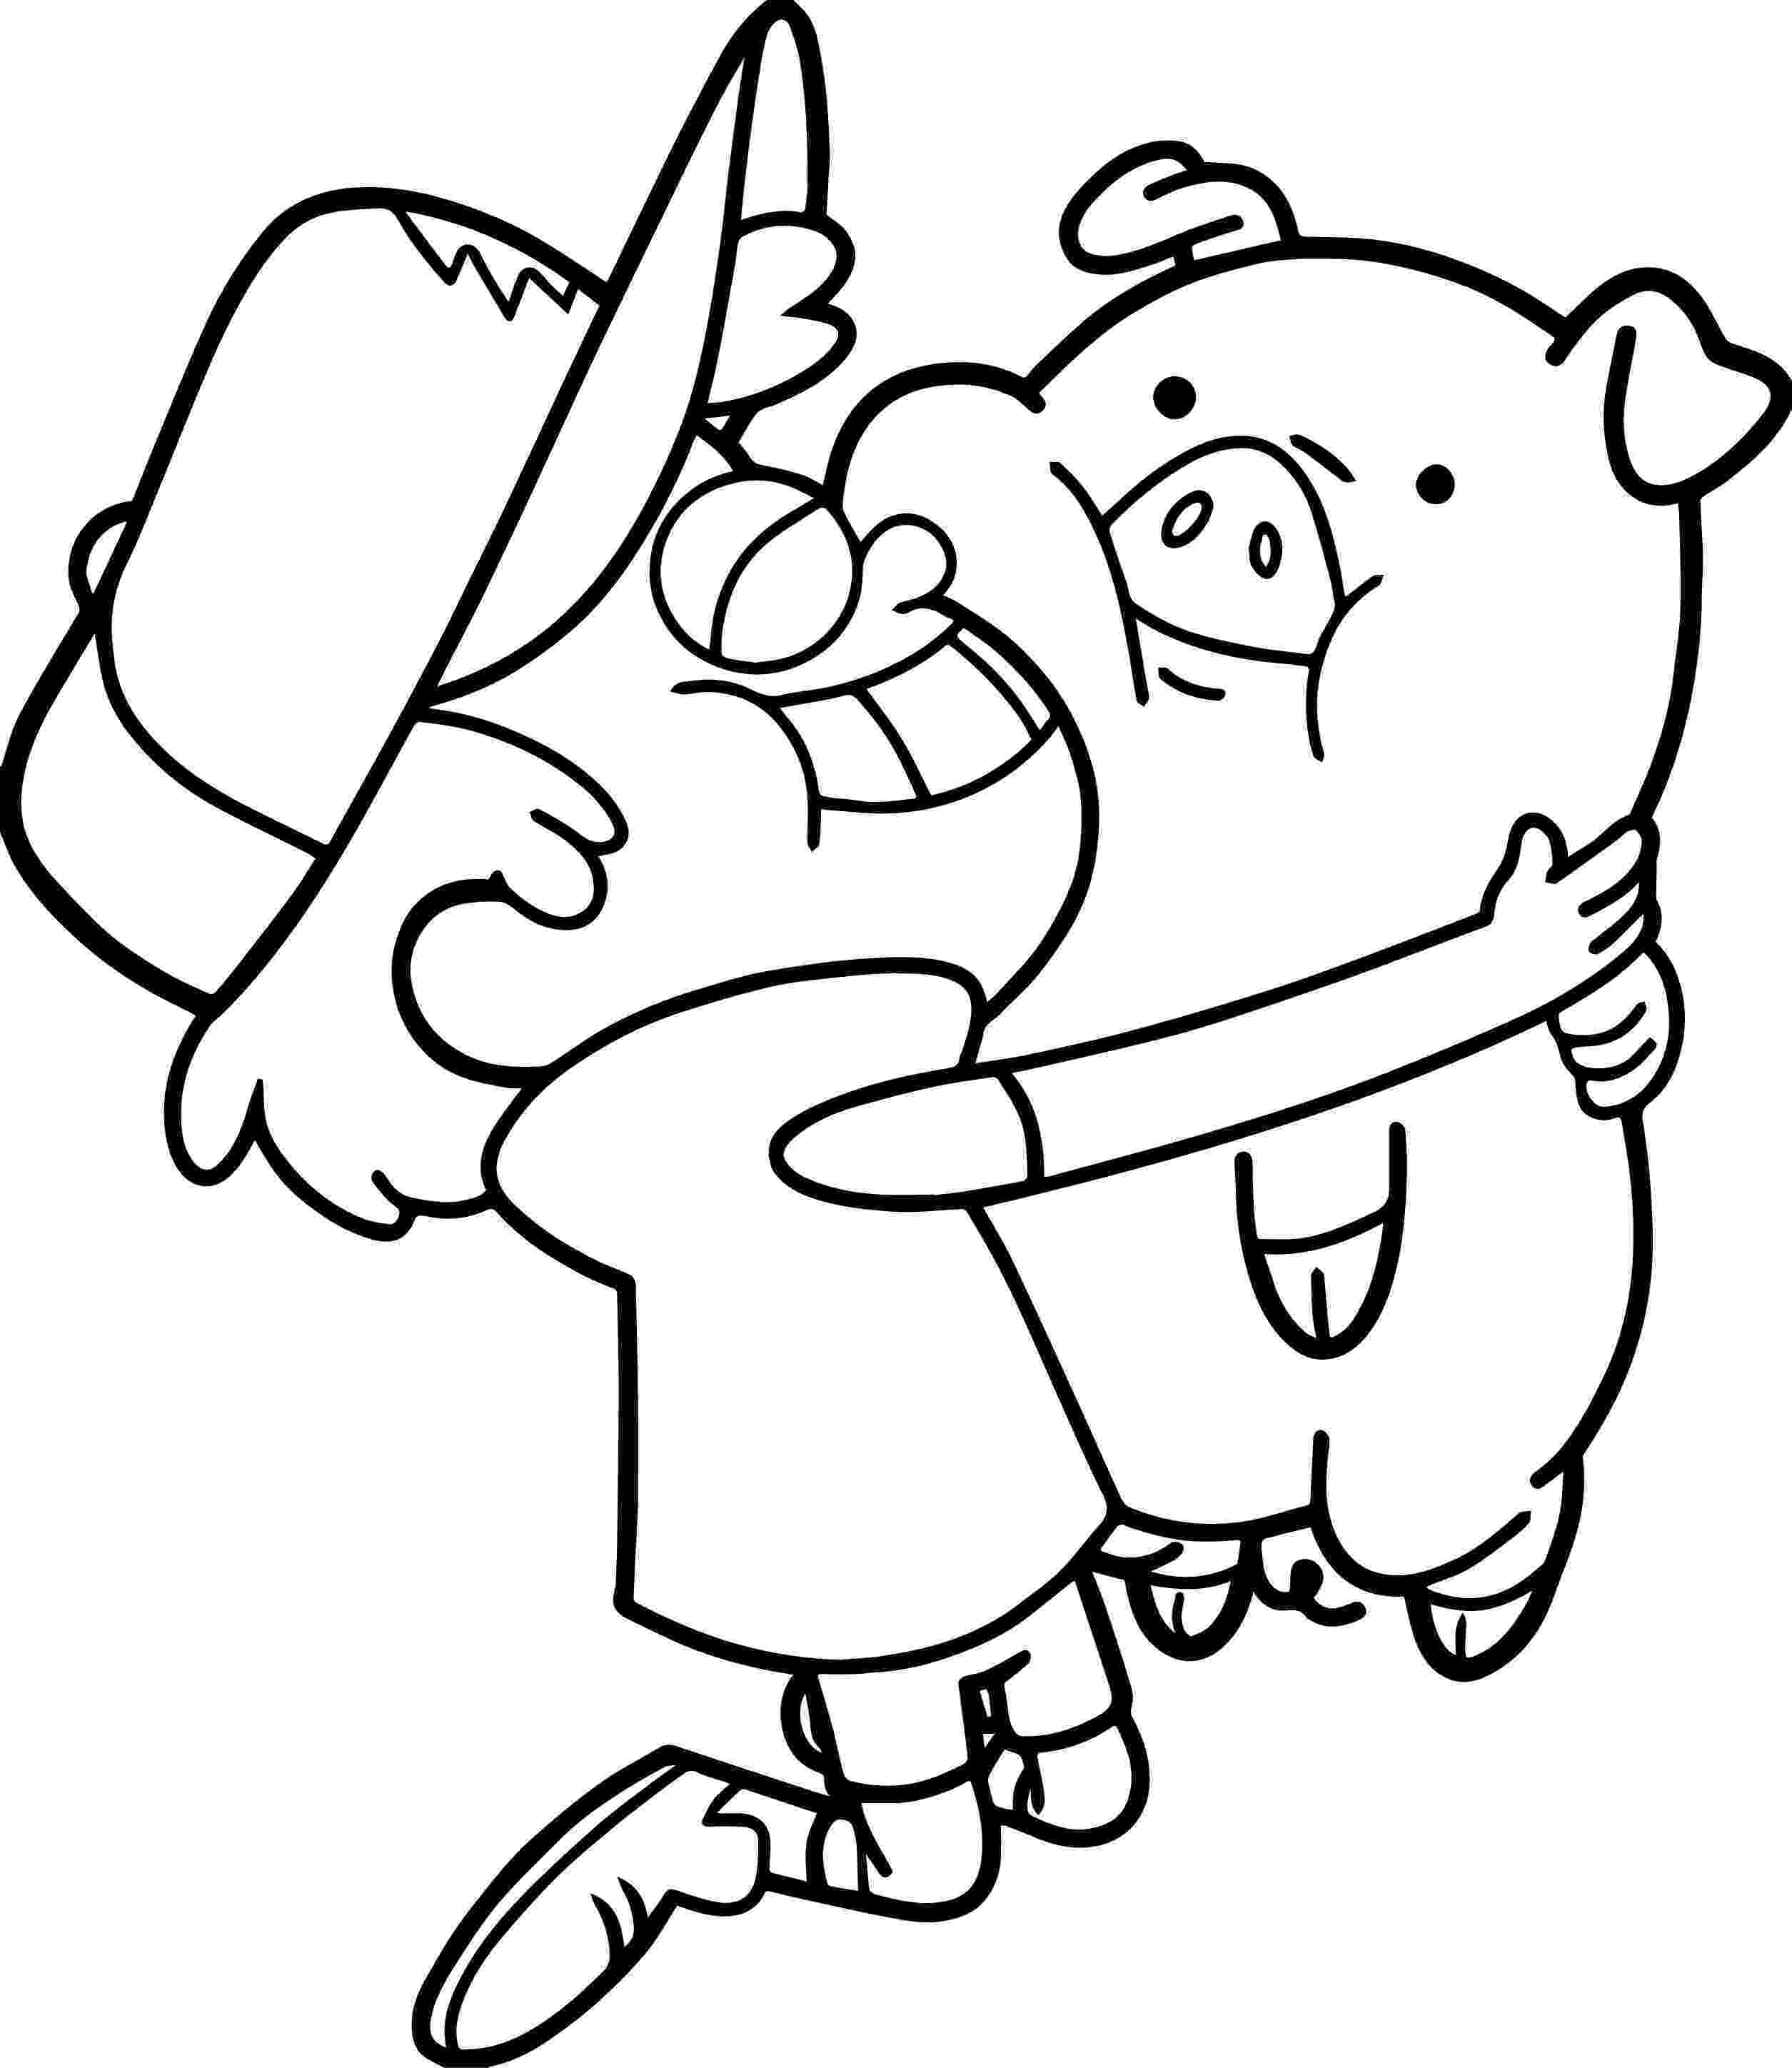 best friends coloring pages best friend coloring pages to download and print for free coloring friends pages best